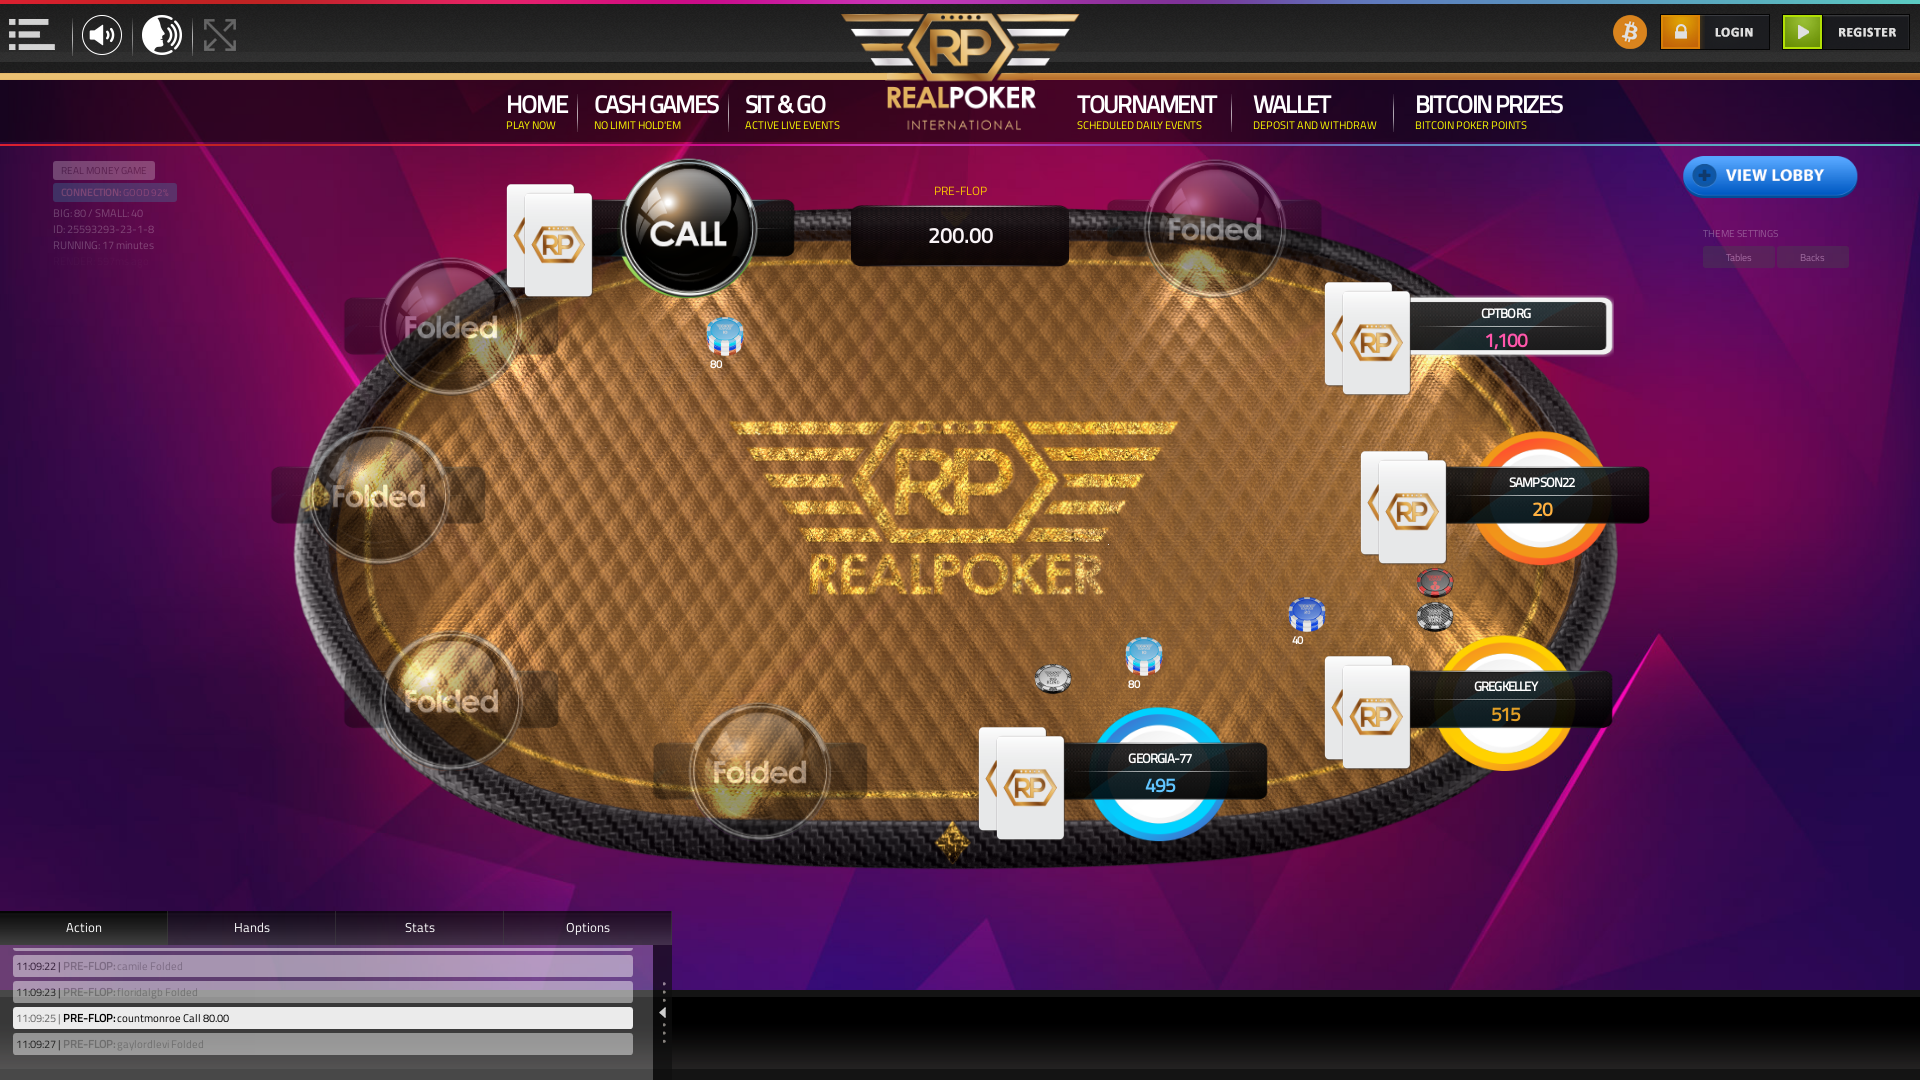 10 player texas holdem table at real poker with the table id 25593293